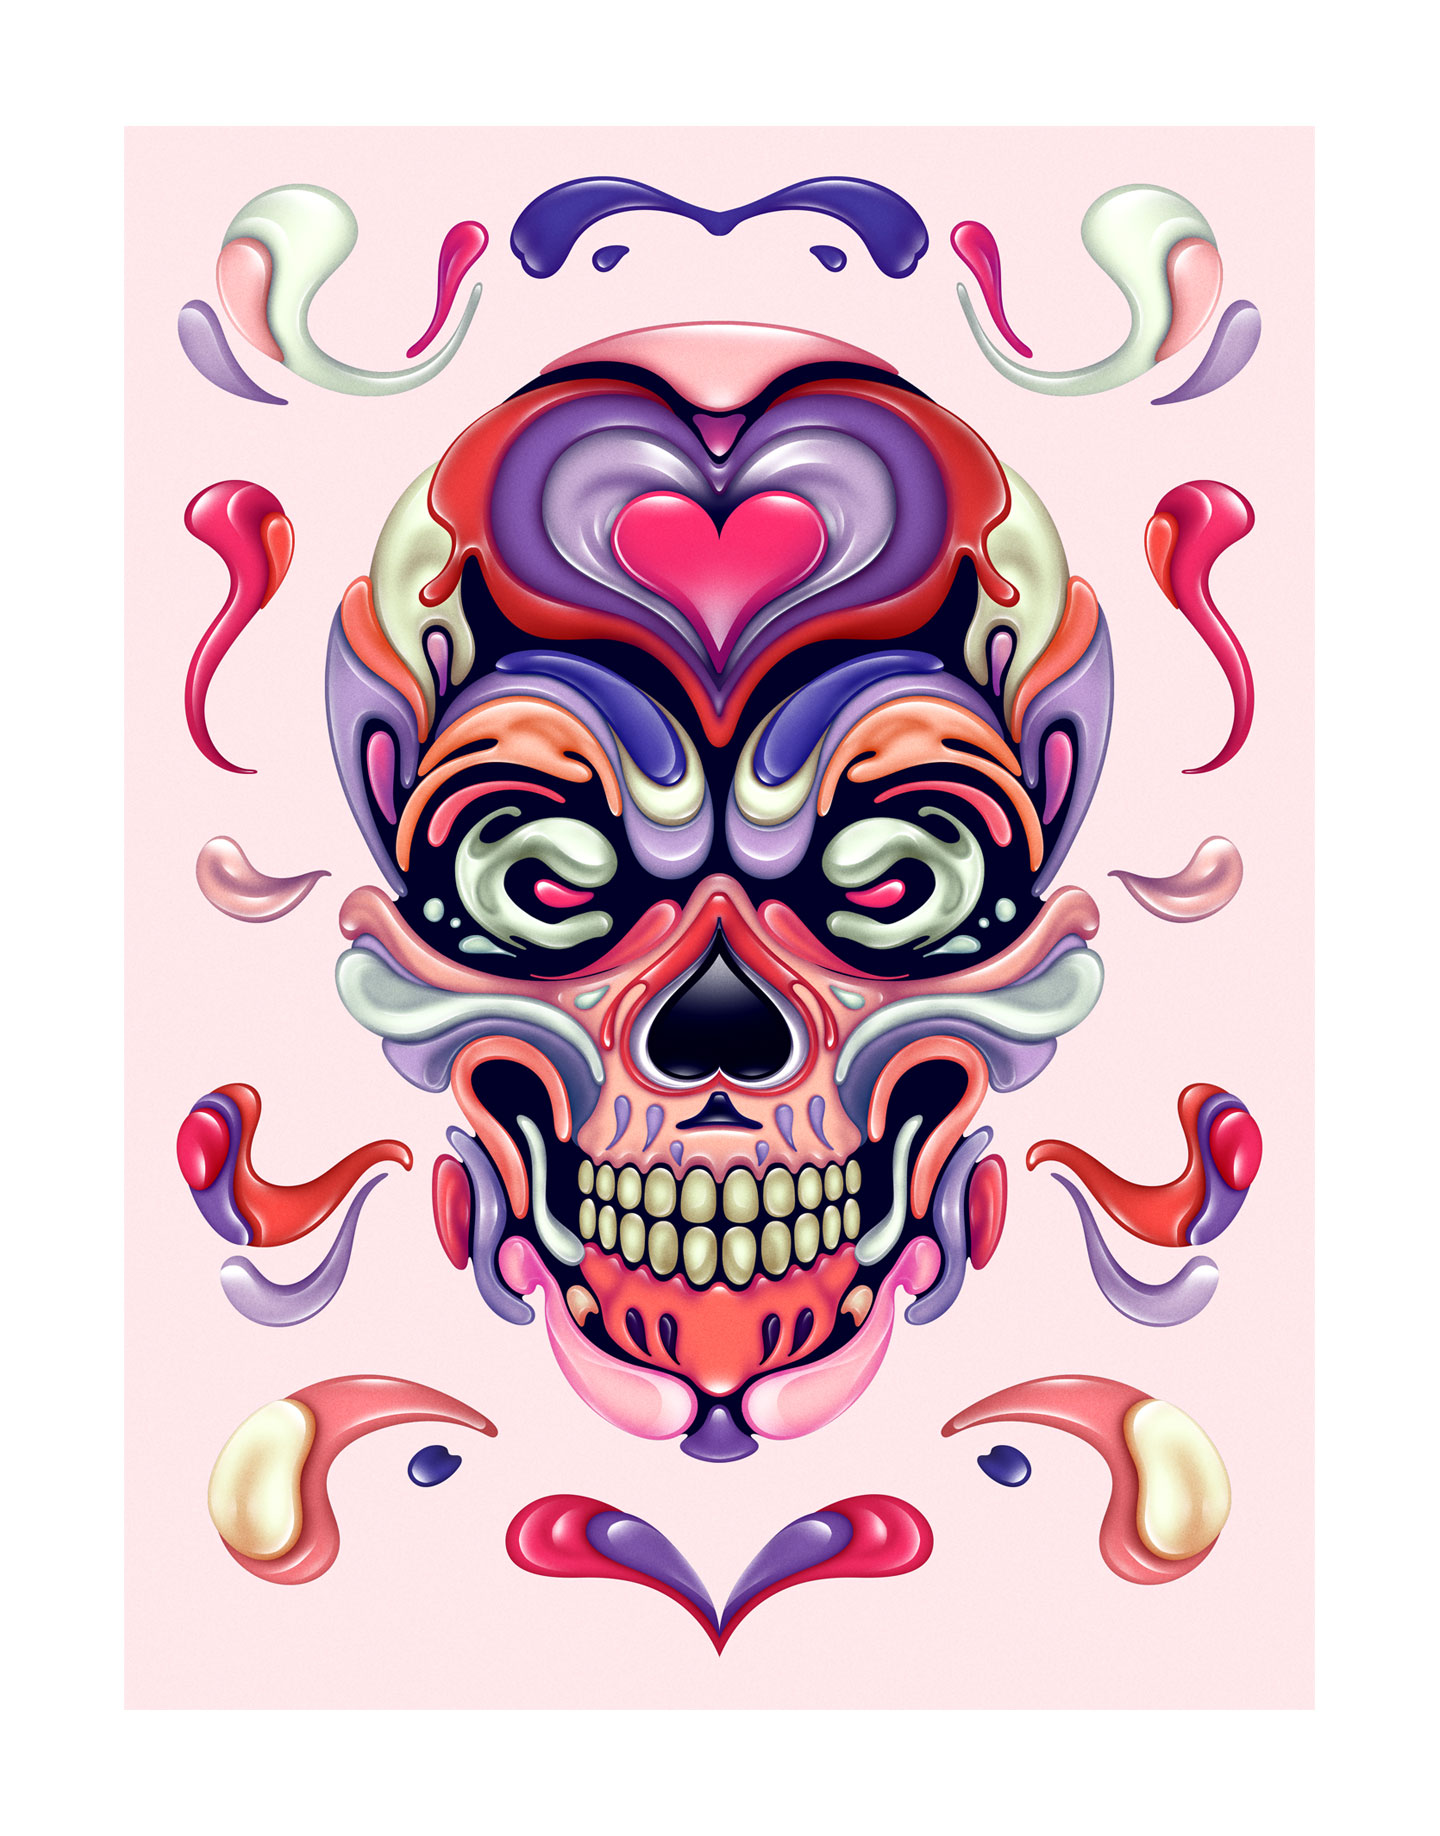 Fluid Skull illustration graphic design by Singapore based brand strategy and creative design consultancy, BÜRO UFHO.